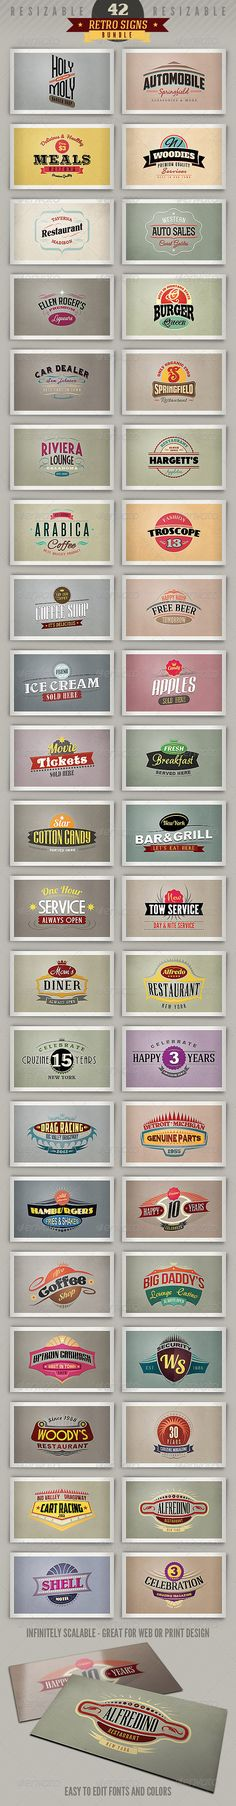 42 Retro Signs or Banners - Bundle - http://graphicriver.net/item/42-retro-signs-or-banners-bundle/4116200?ref=cruzine